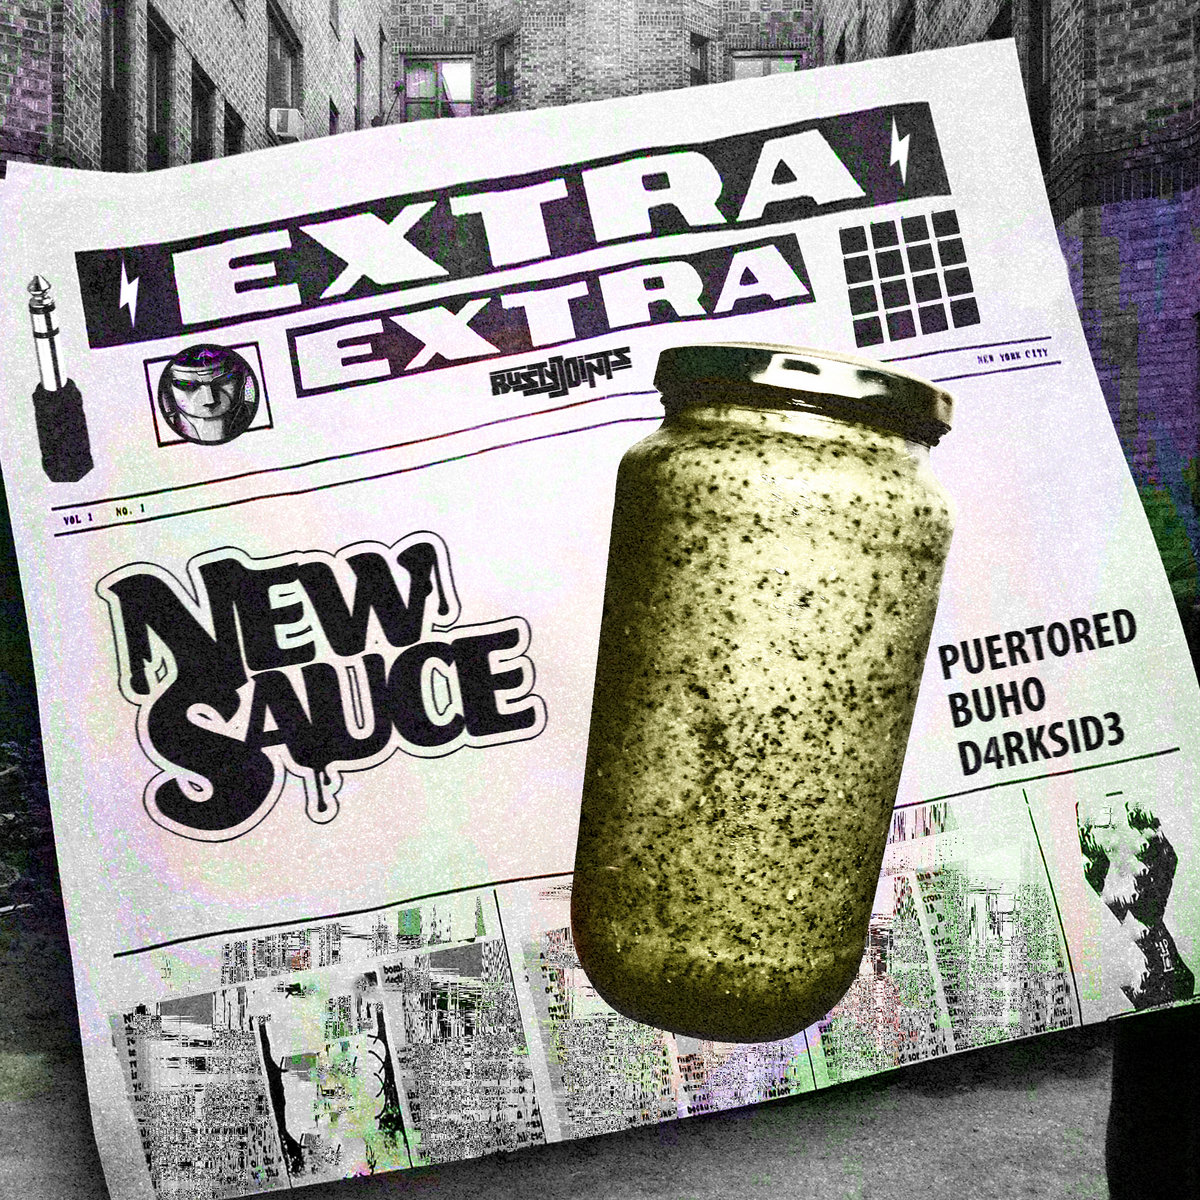 Extra Extra (feat. Puertored, Buho and D4RKSID3) [New Sauce] [Single] by Rusty Joints